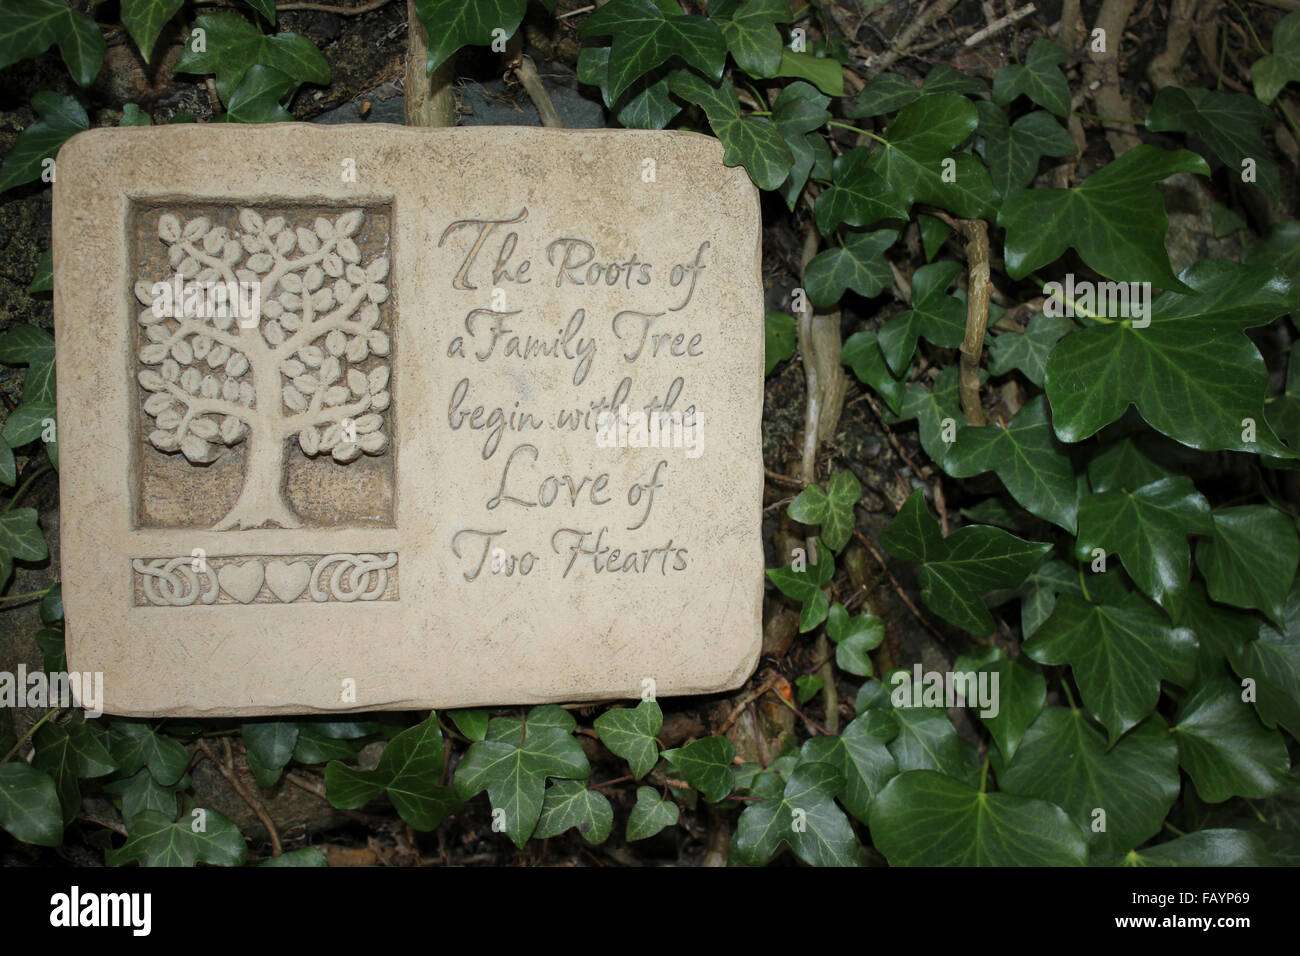 Family Tree Plaque amid Ivy Leaves - Stock Image